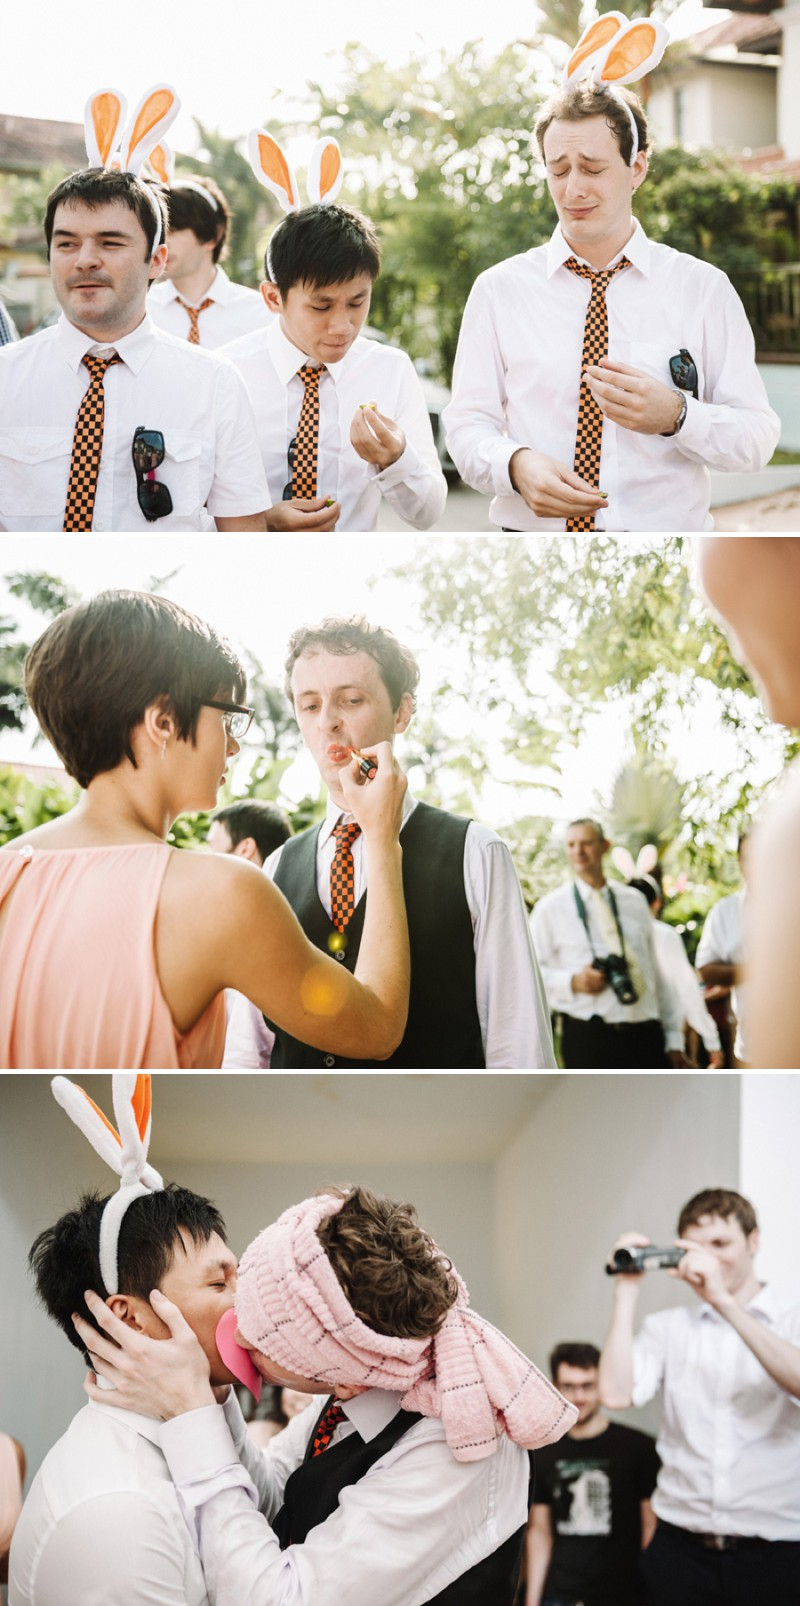 A Beautiful Destination Wedding In Singapore With A Pink And Orange Colour Scheme And A Traditional Chinese Tea Ceremony And White Florals Photographed By Ann-Kathrin Koch._0004